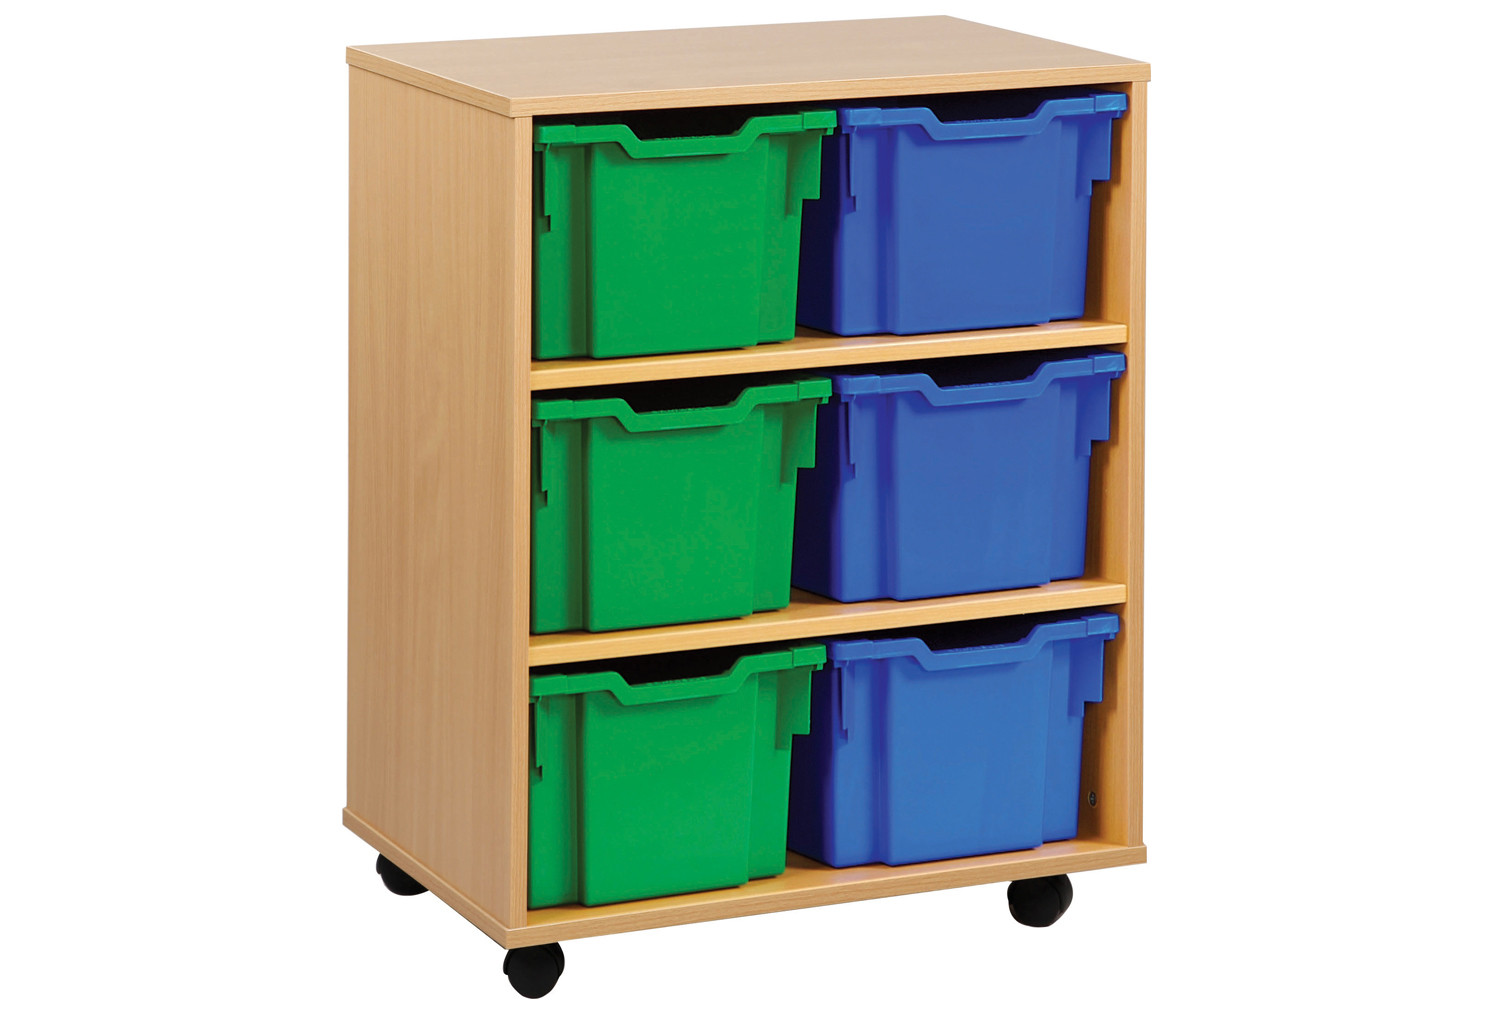 6 Extra Deep Tray Storage Unit. Find Loads More Colours, Materials & Styles Online - Buy Office Furniture Online